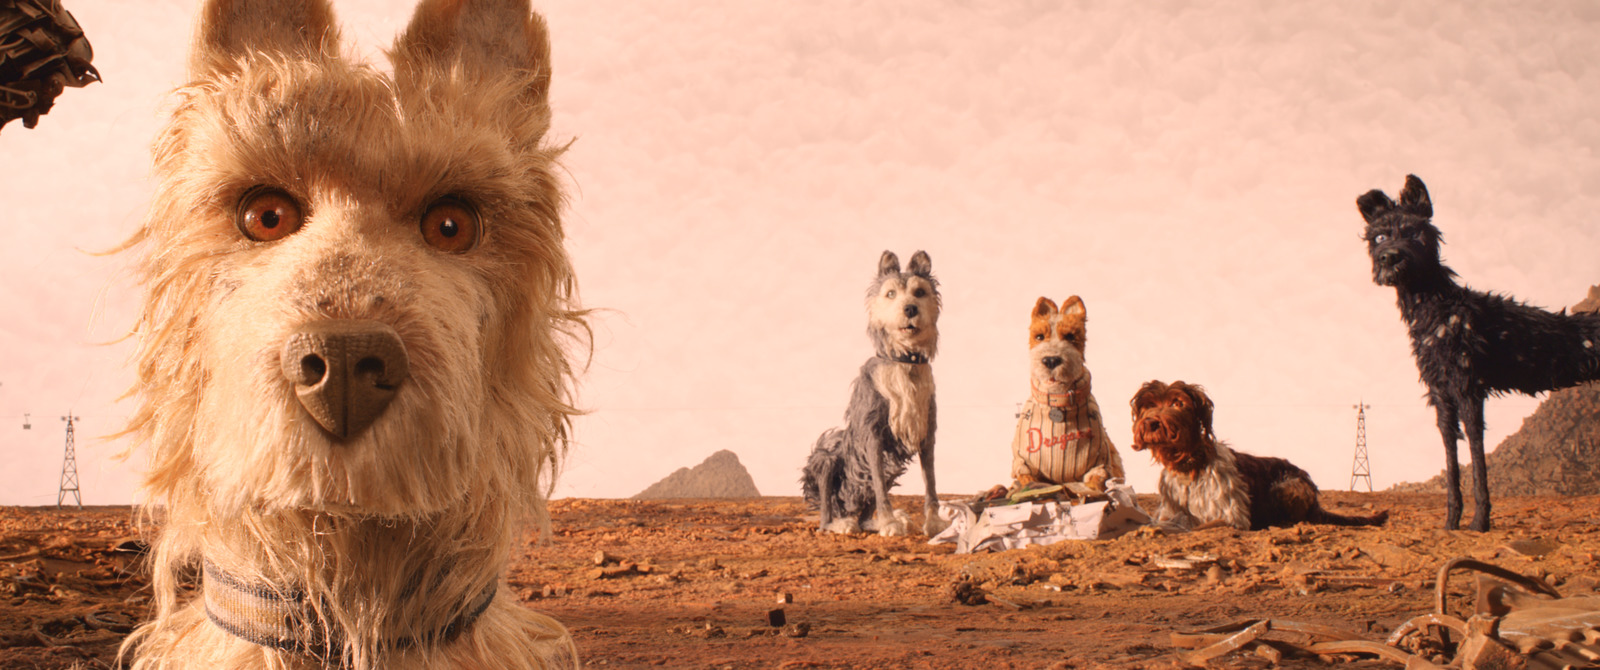 Wes Anderson's animation Isle of Dogs will open the 14th Glasgow Film Festival.